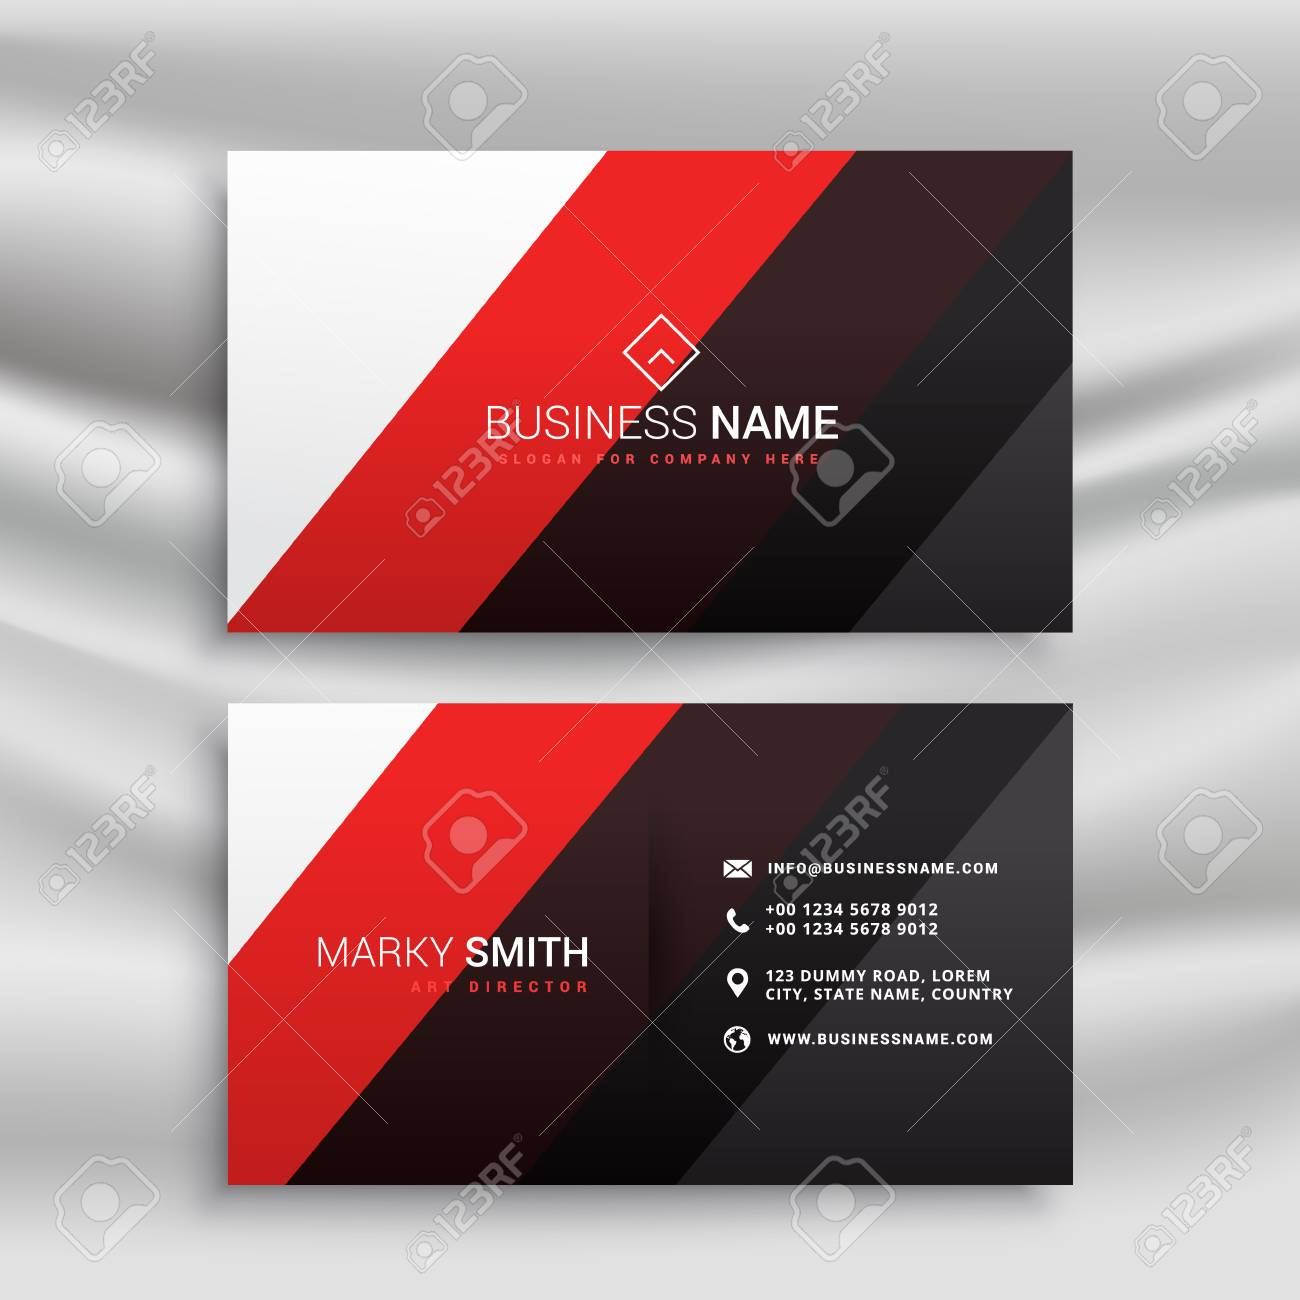 Red And Black Minimal Business Card Design Royalty Free Cliparts